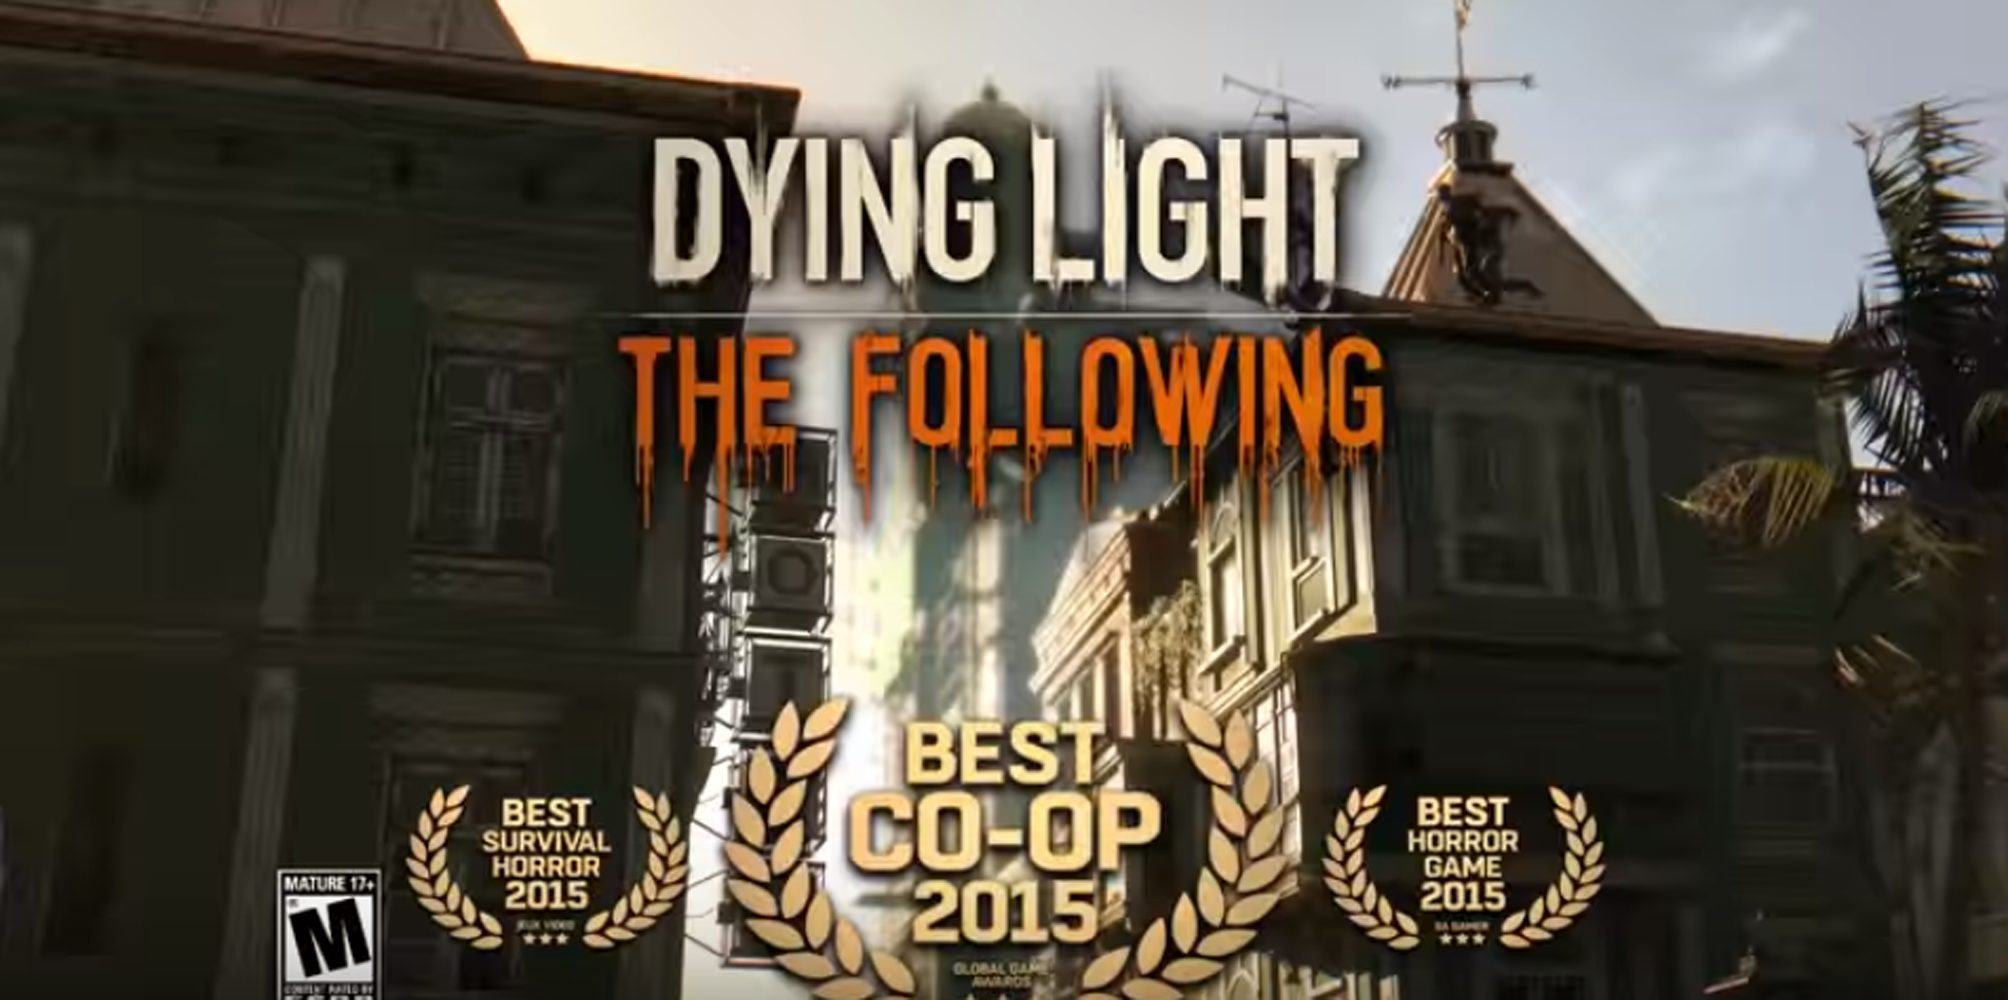 Dying Light Releases Book of Records Video